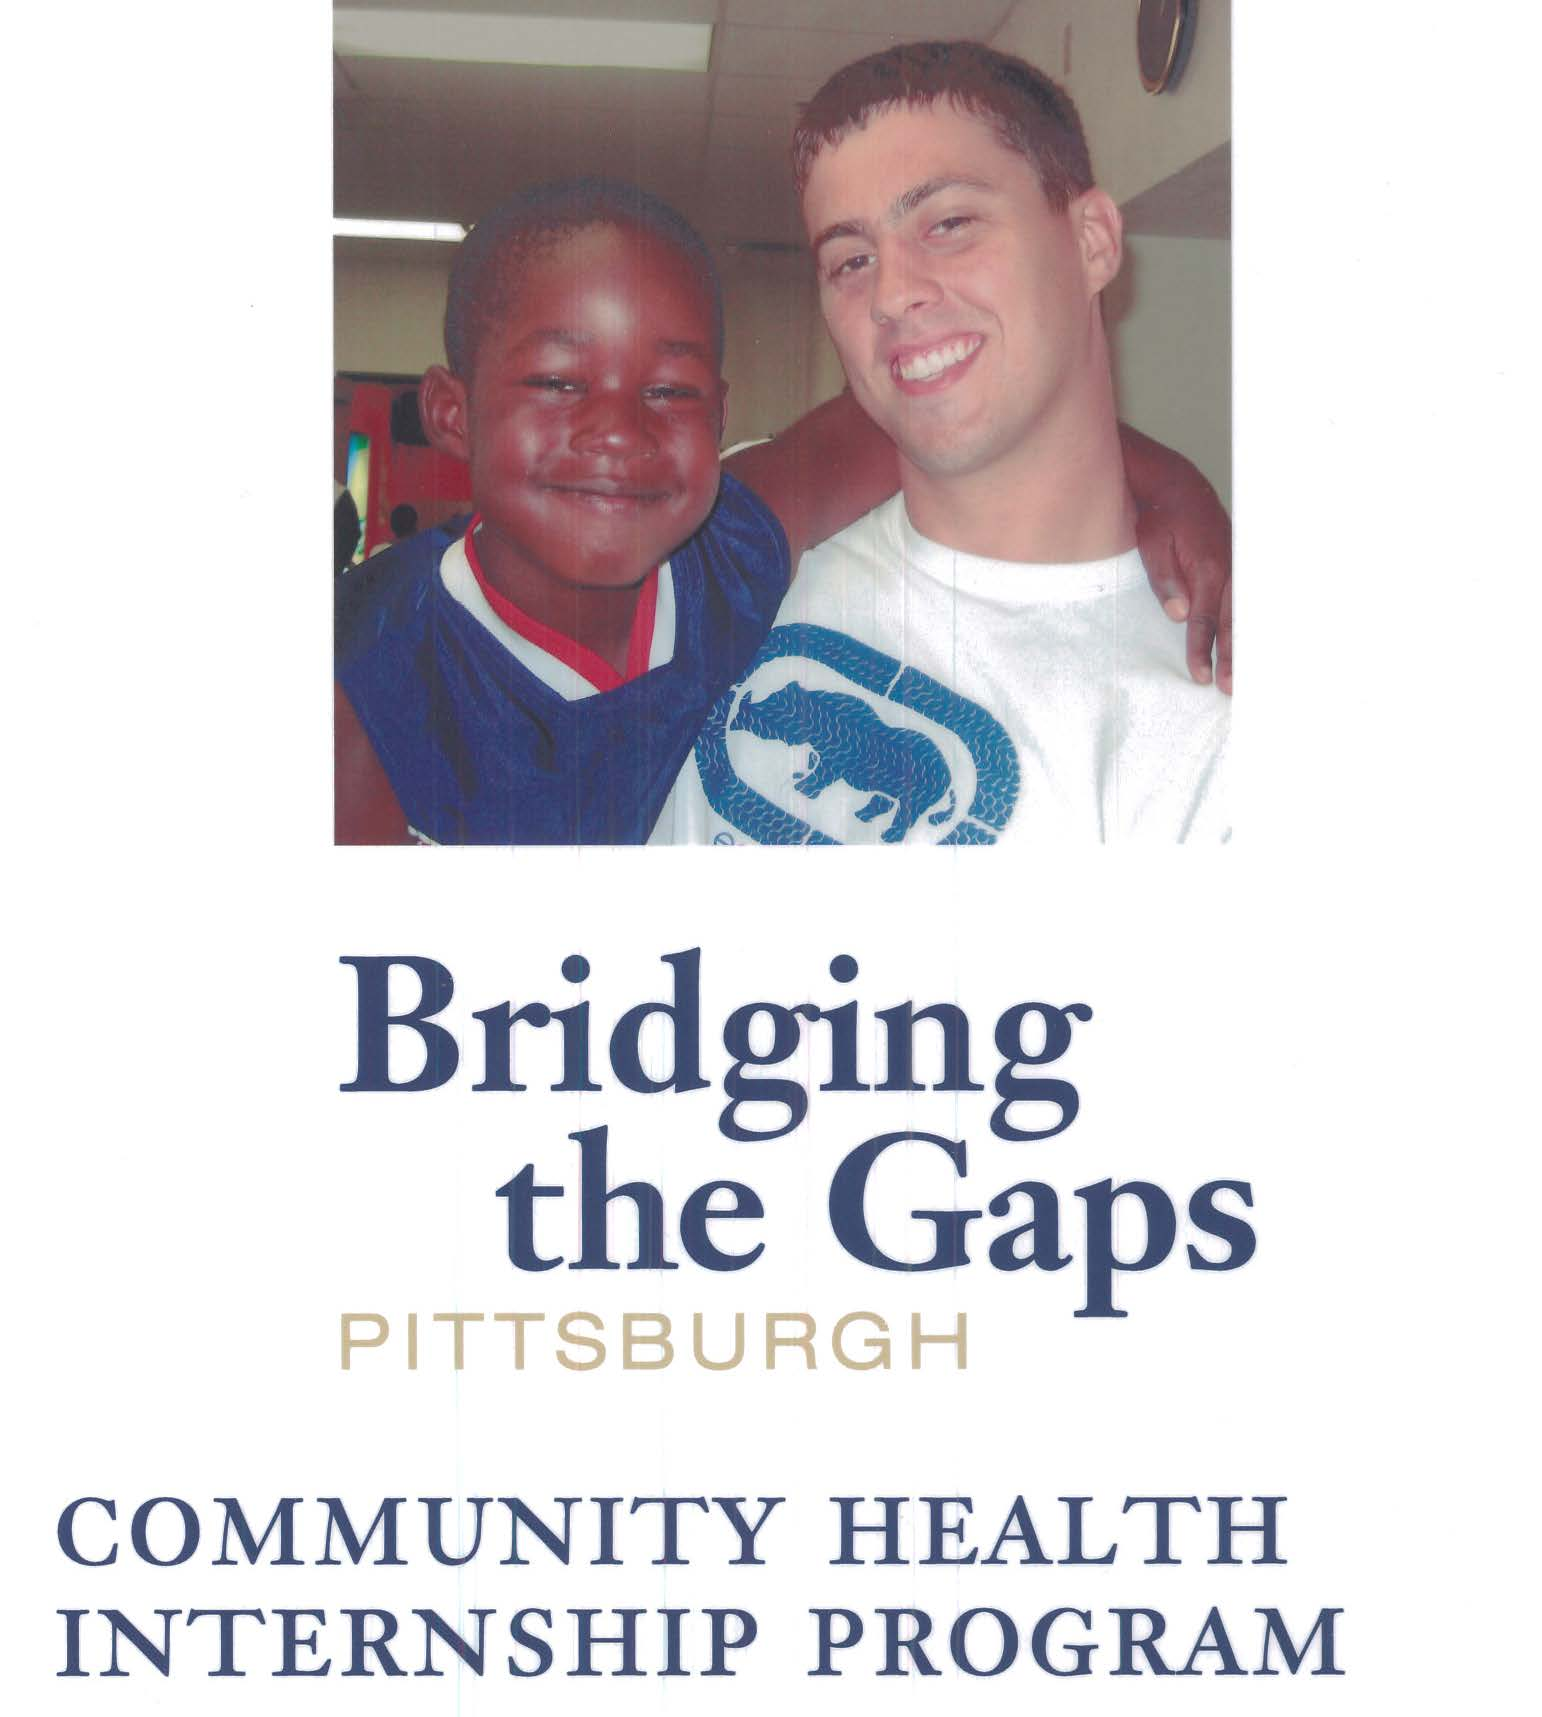 Bridging the Gaps Community Internship